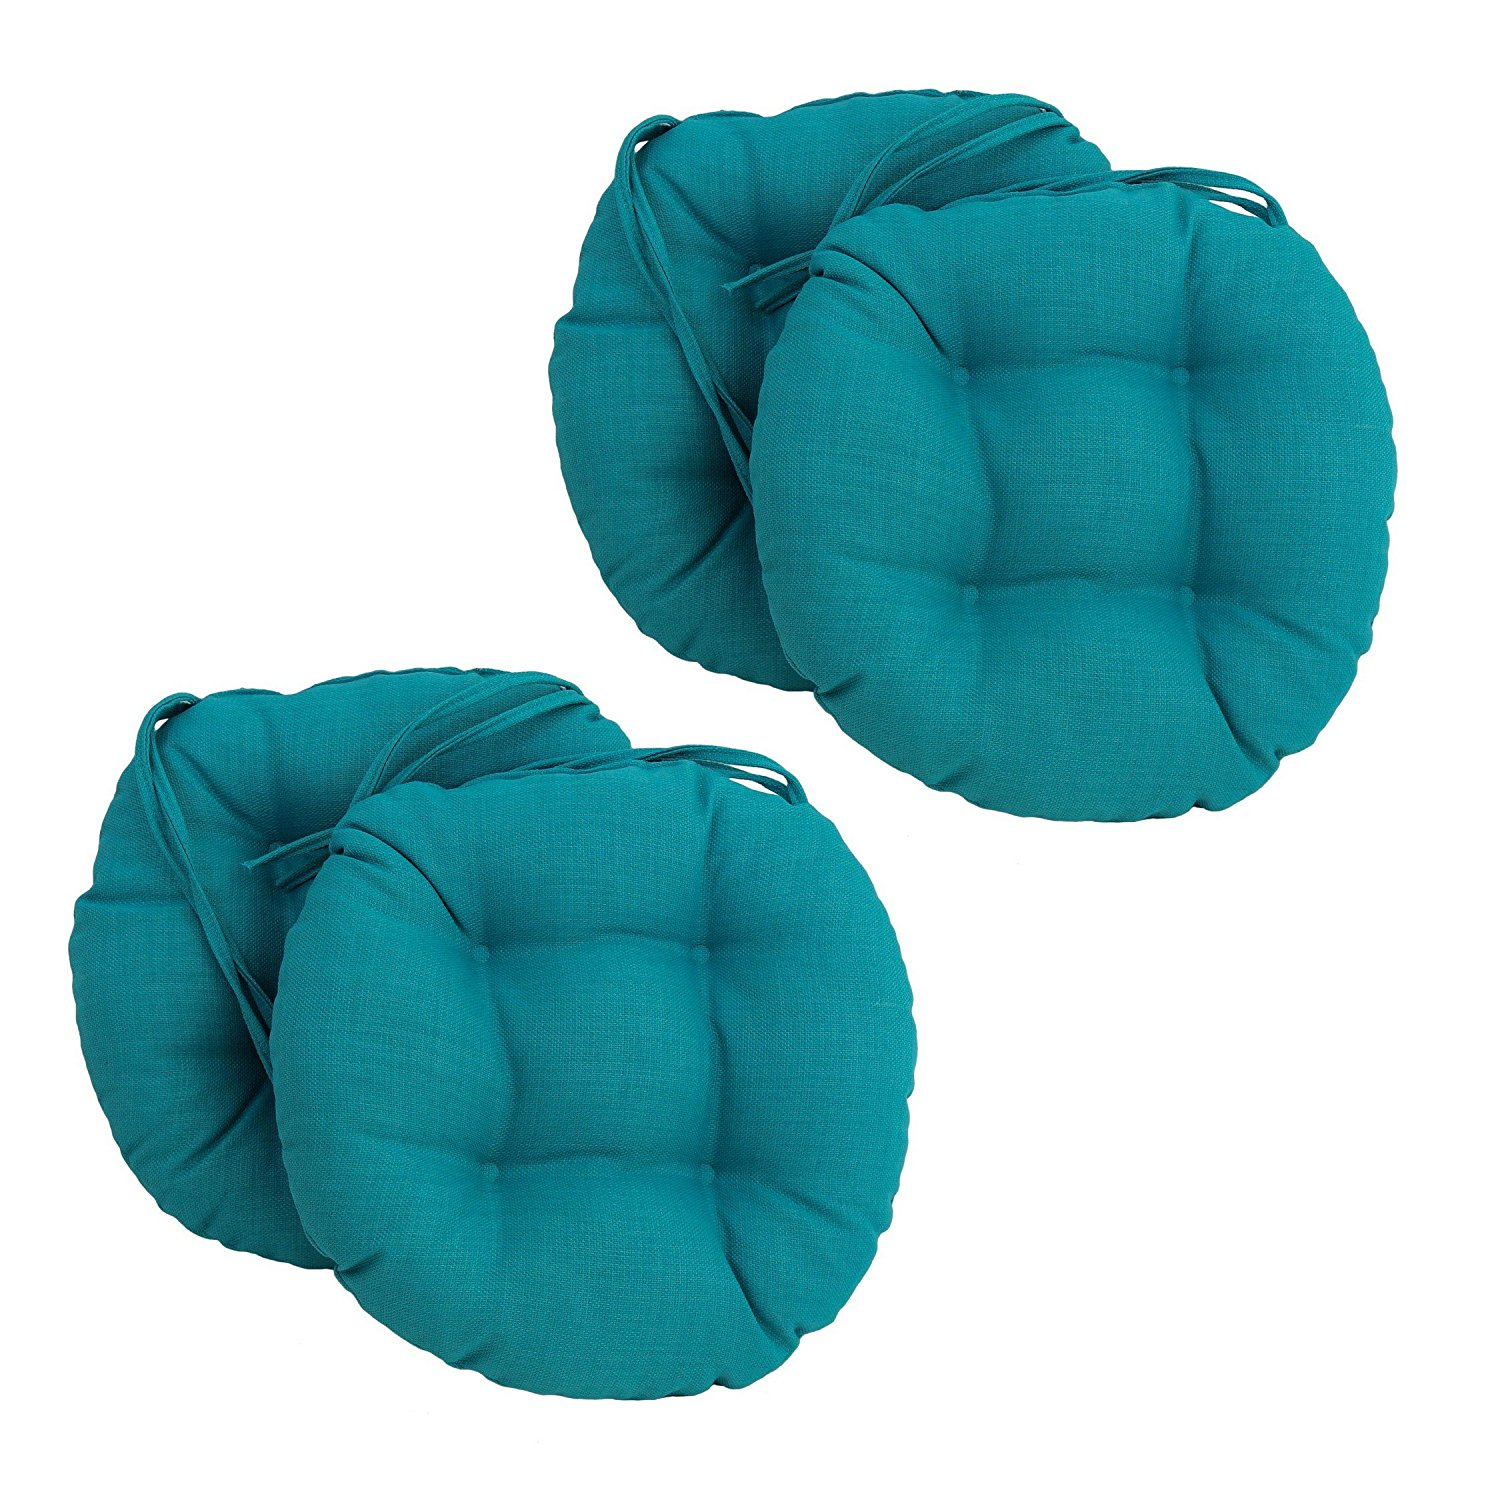 Cheap Tufted Outdoor Chair Cushions Find Tufted Outdoor Chair